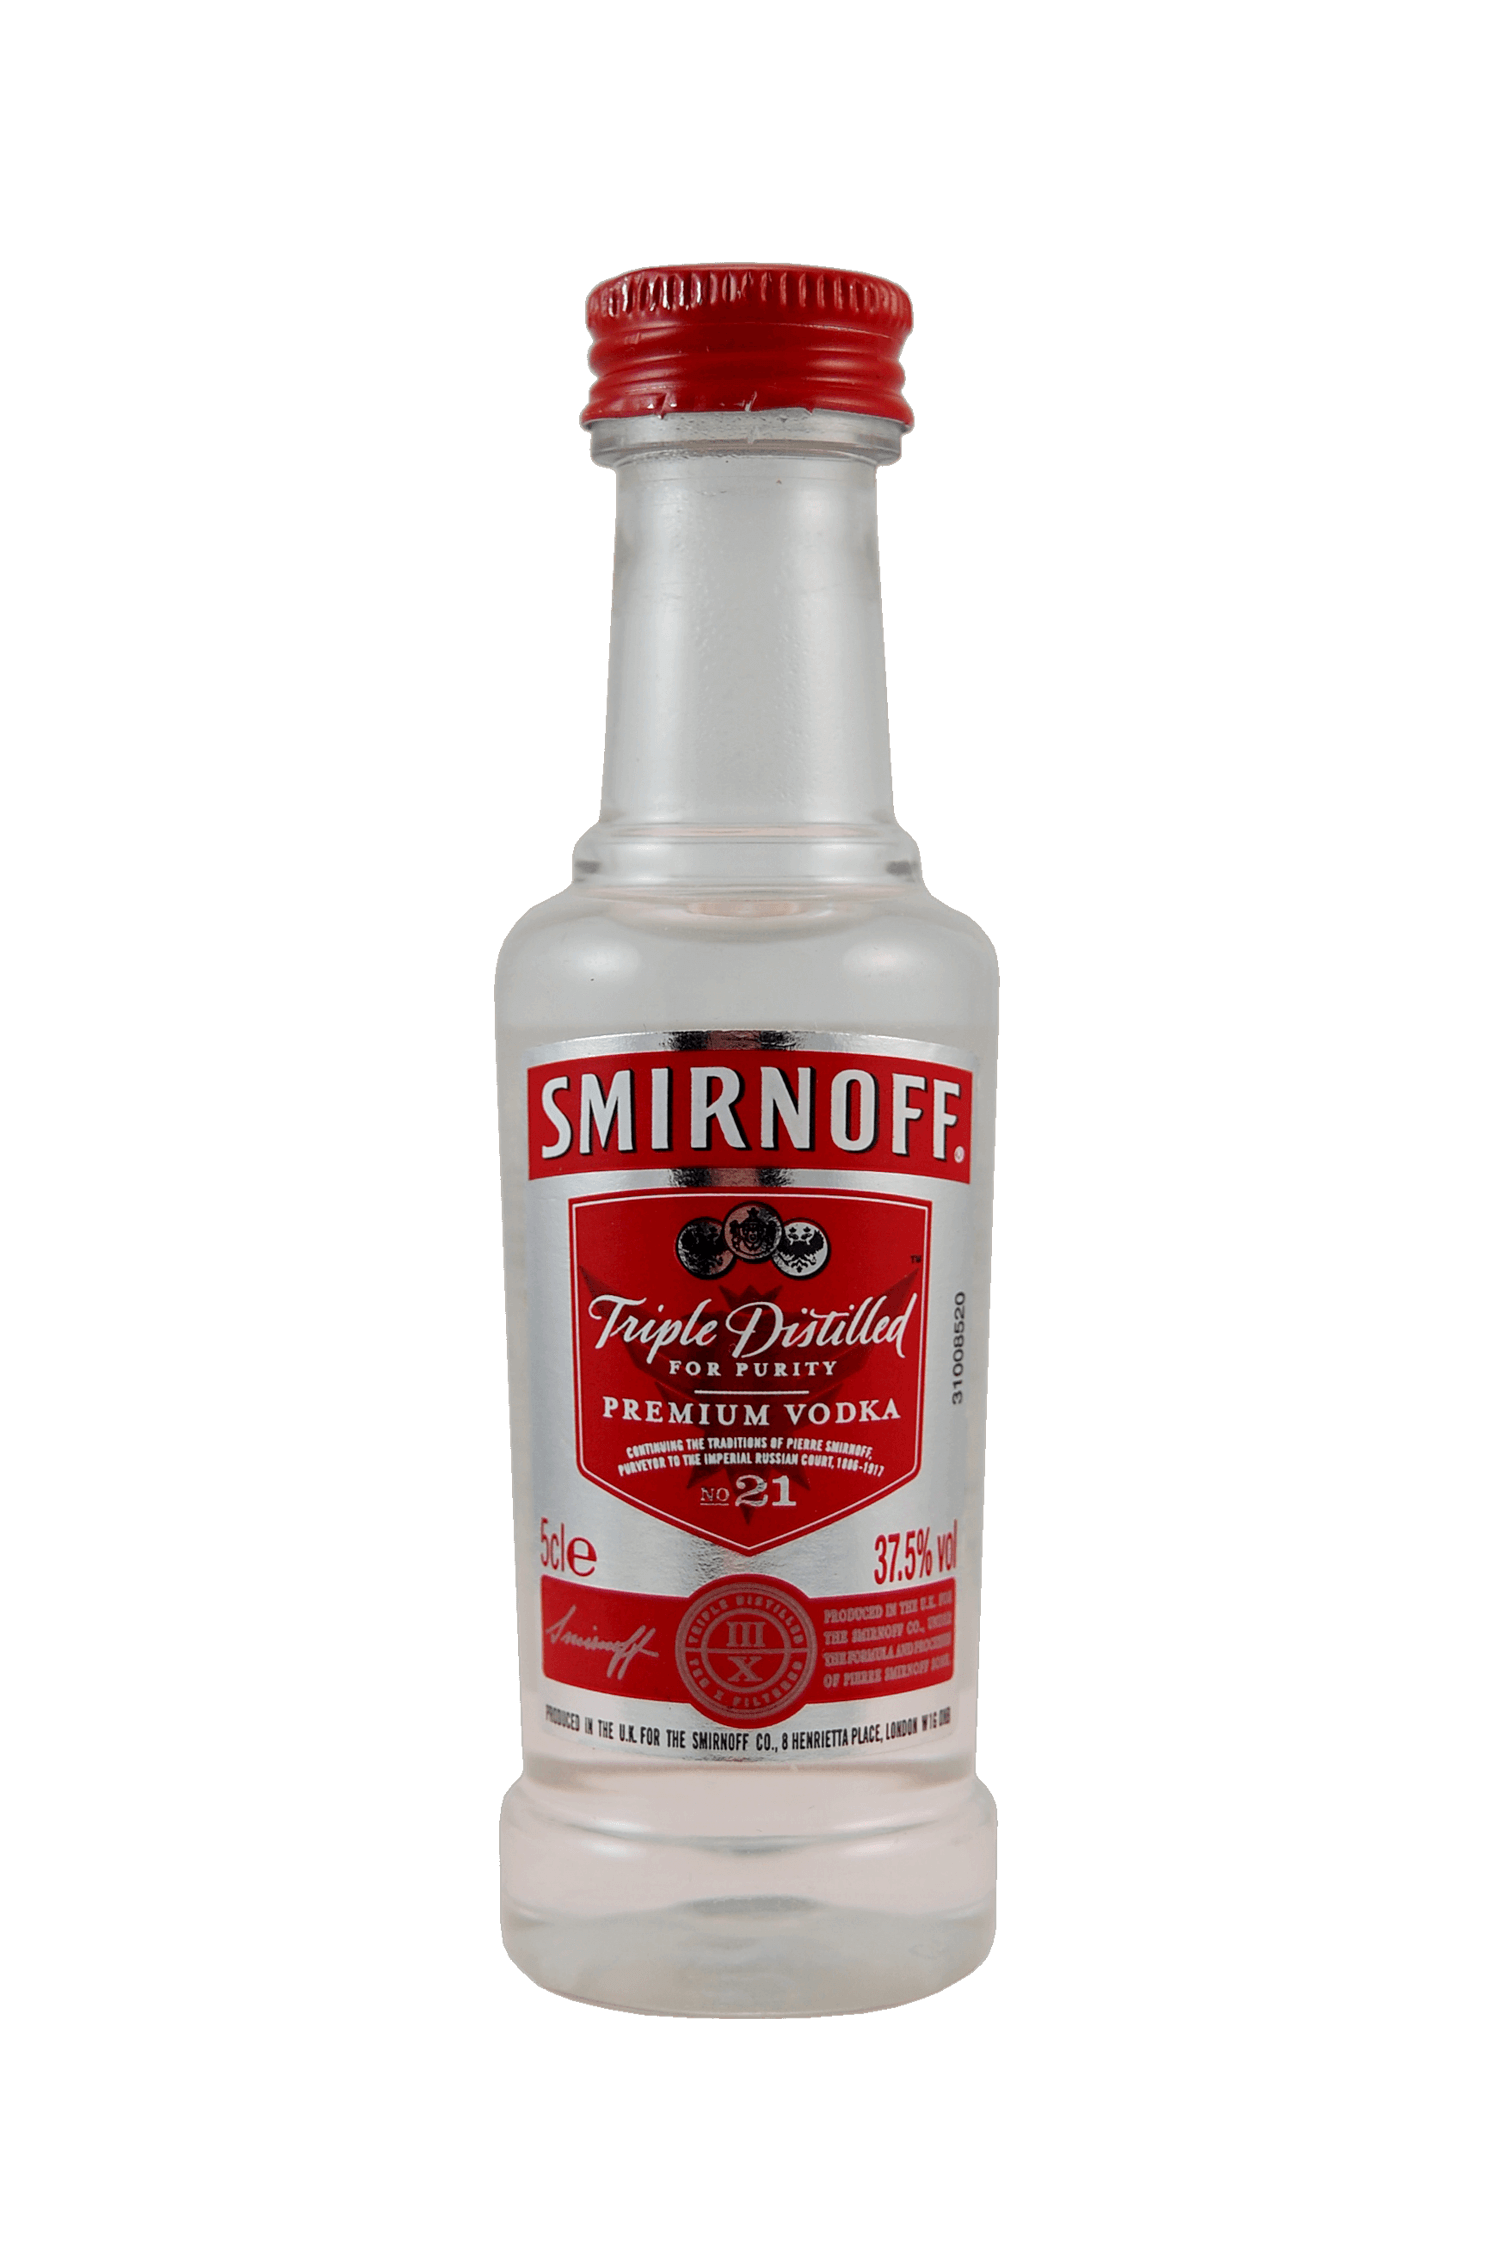 Smirnoff Triple Distilled